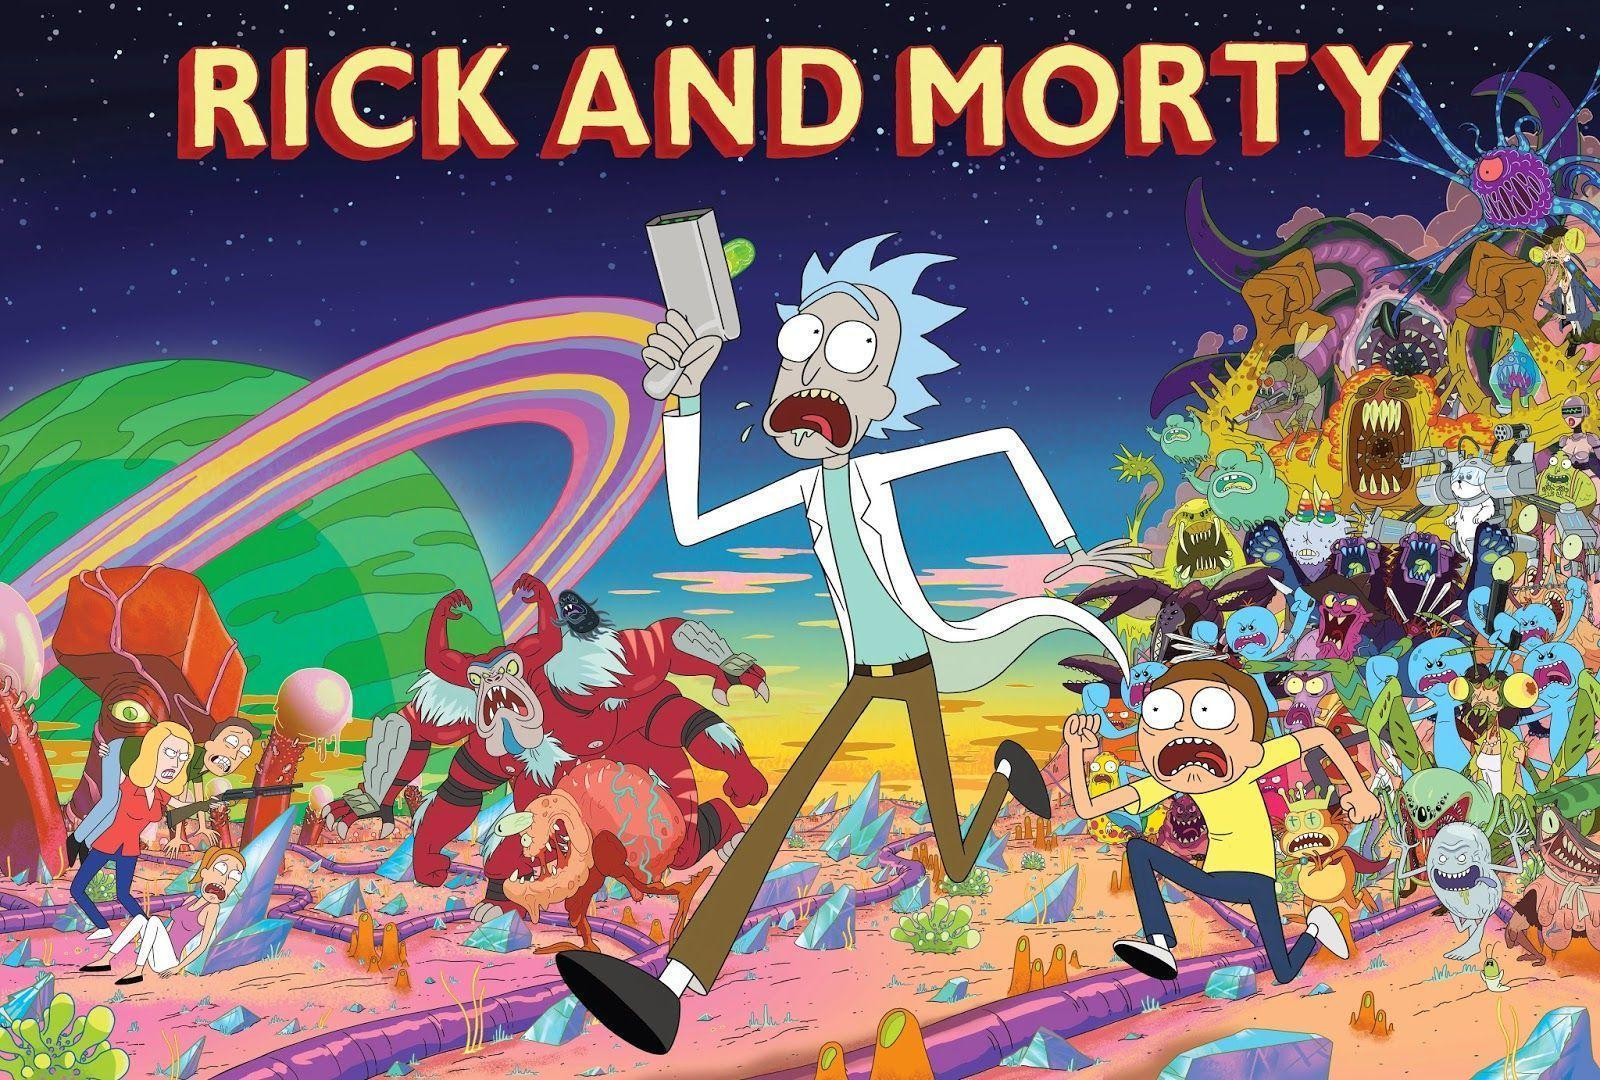 Rick And Morty Laptop Wallpapers Top Free Rick And Morty Laptop Backgrounds Wallpaperaccess